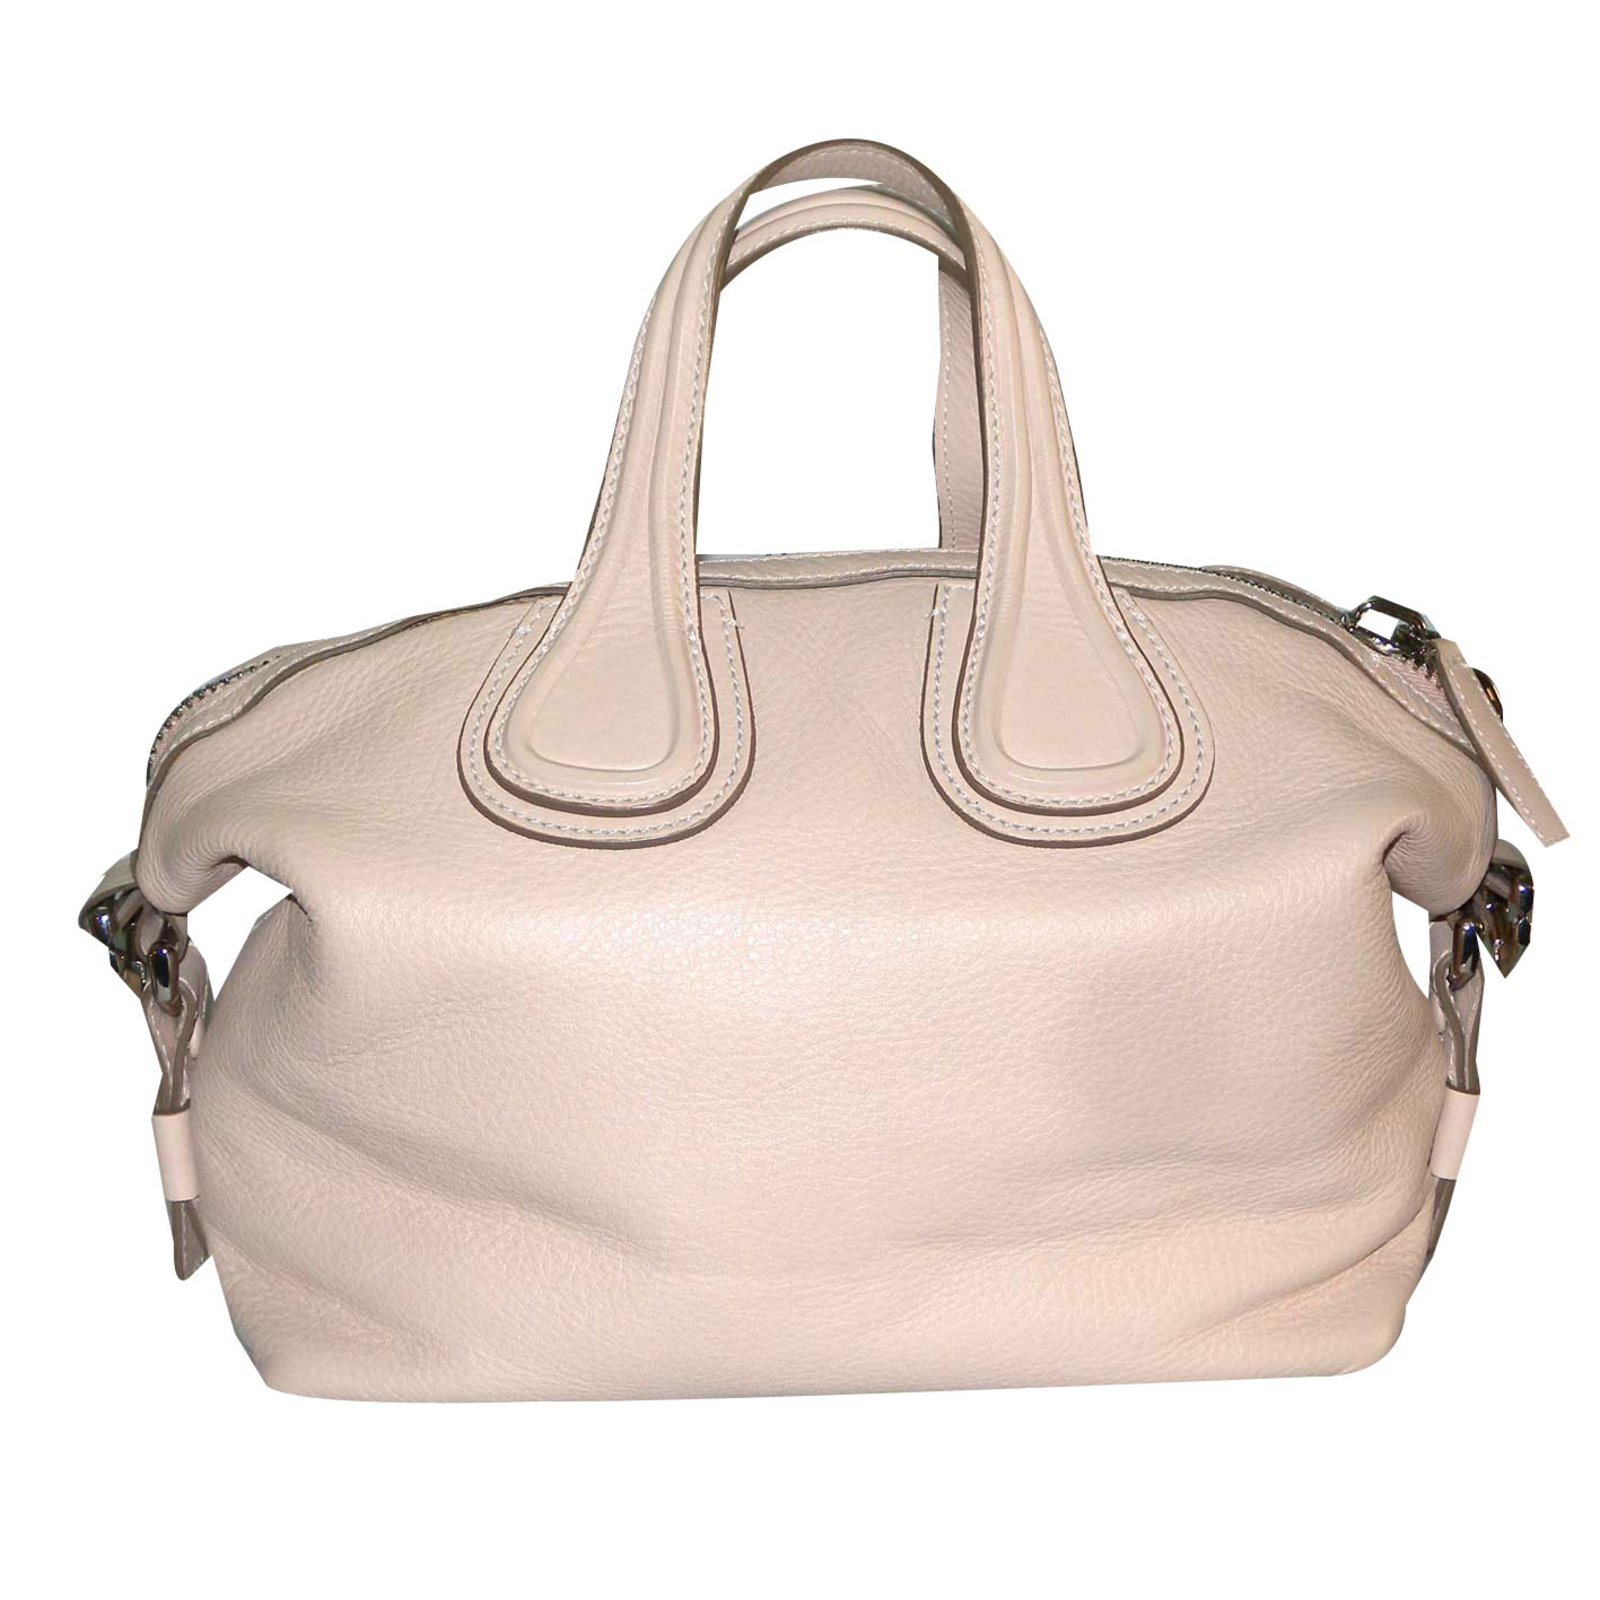 10bee8f46af Givenchy Handbags Handbags Leather Cream ref.45835 - Joli Closet